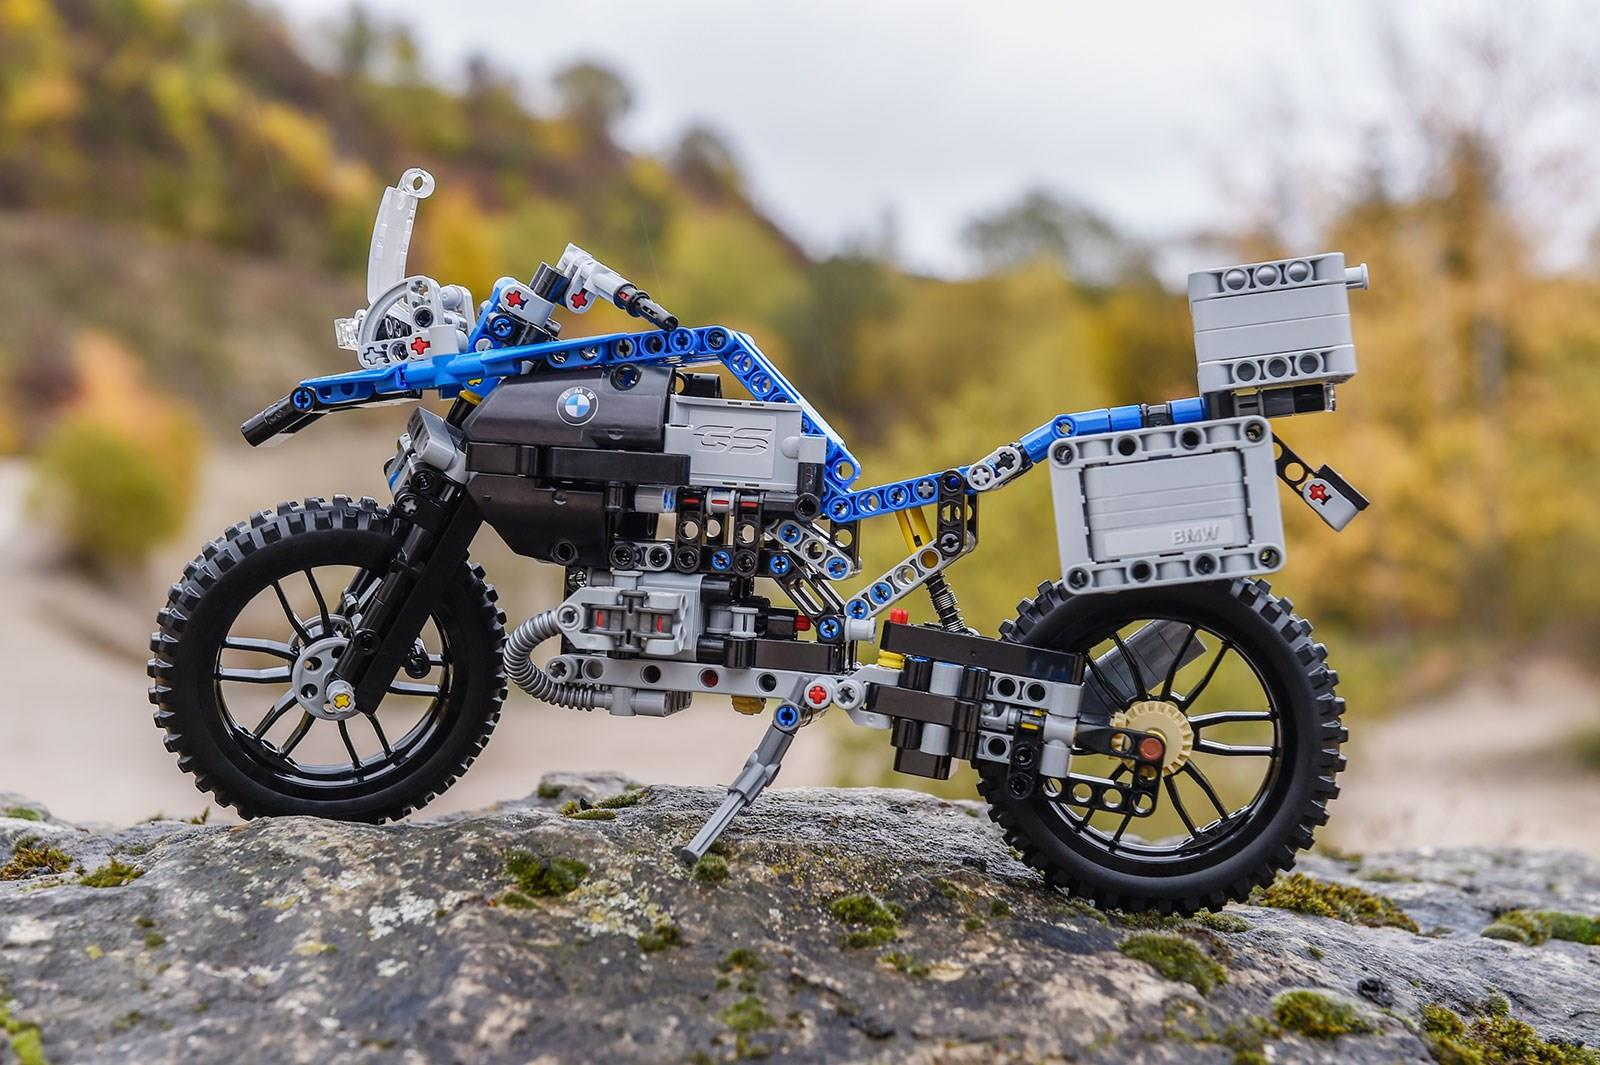 James is good at not putting bikes together, so maybe the Lego GS will help